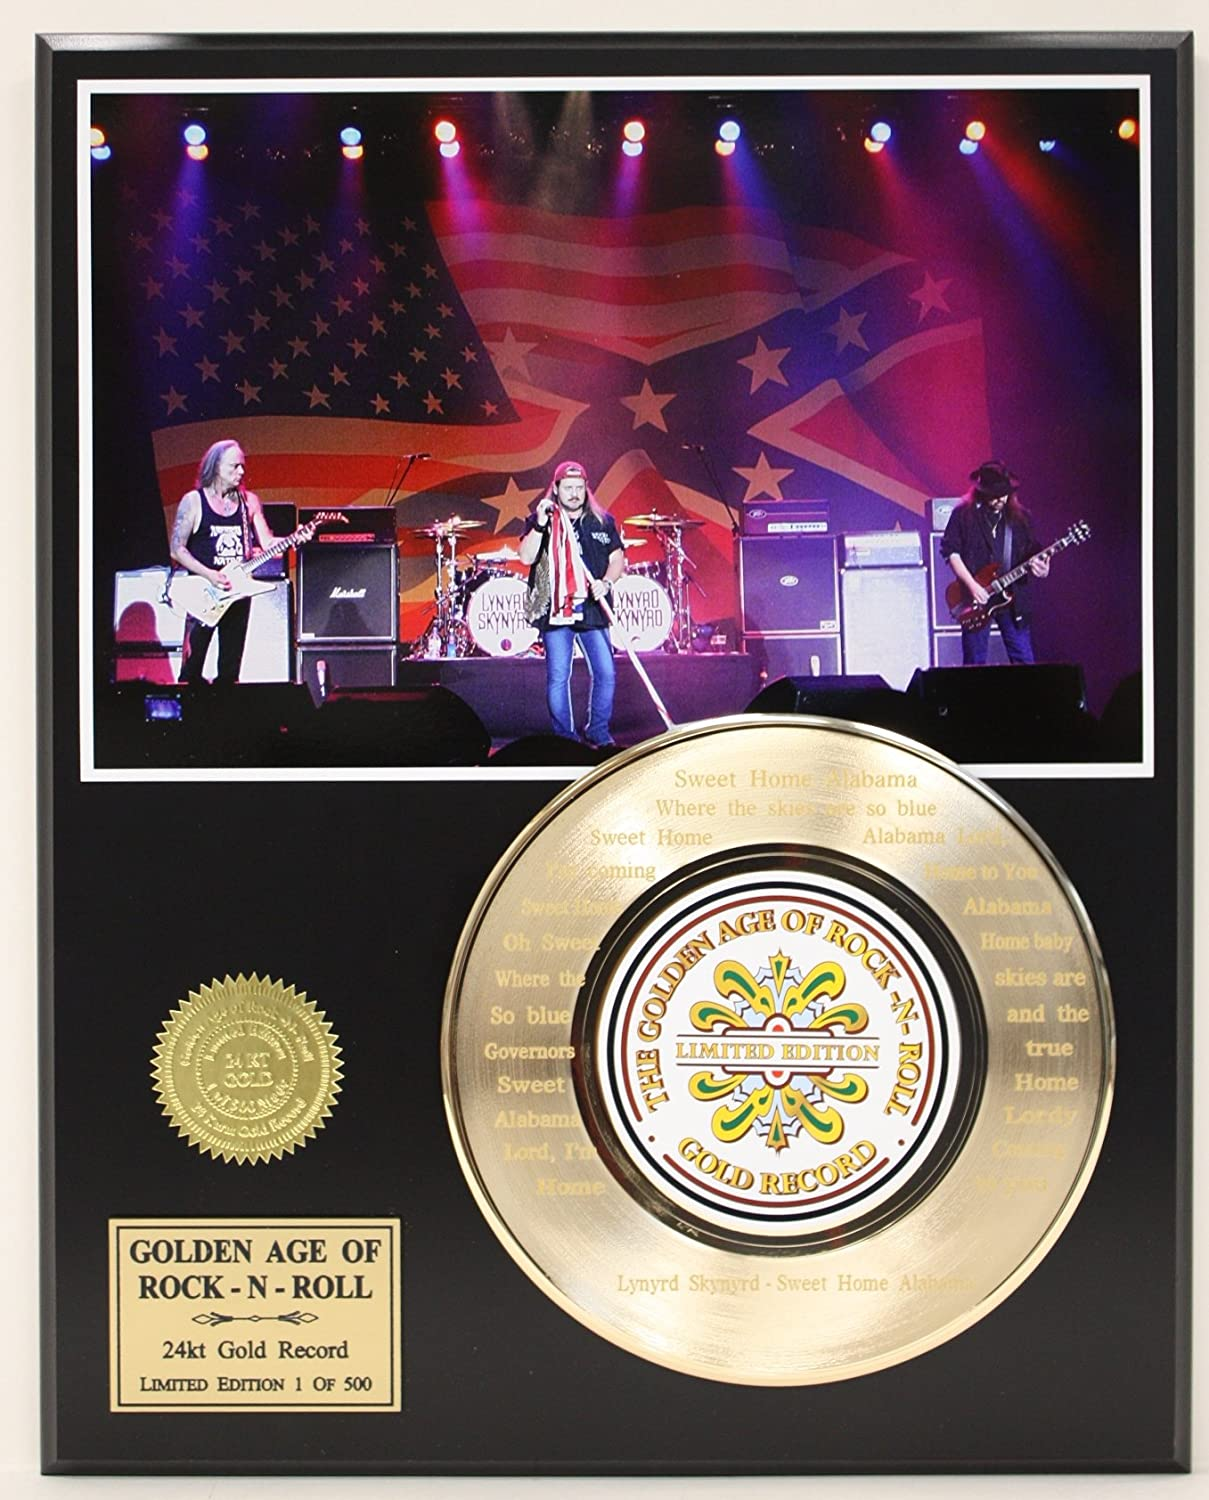 Lynryd Skynrd Laser Etched With the the Lyrics to'Sweet Home Alabama' Limited Edition Gold Record Display Gold Record Outlet